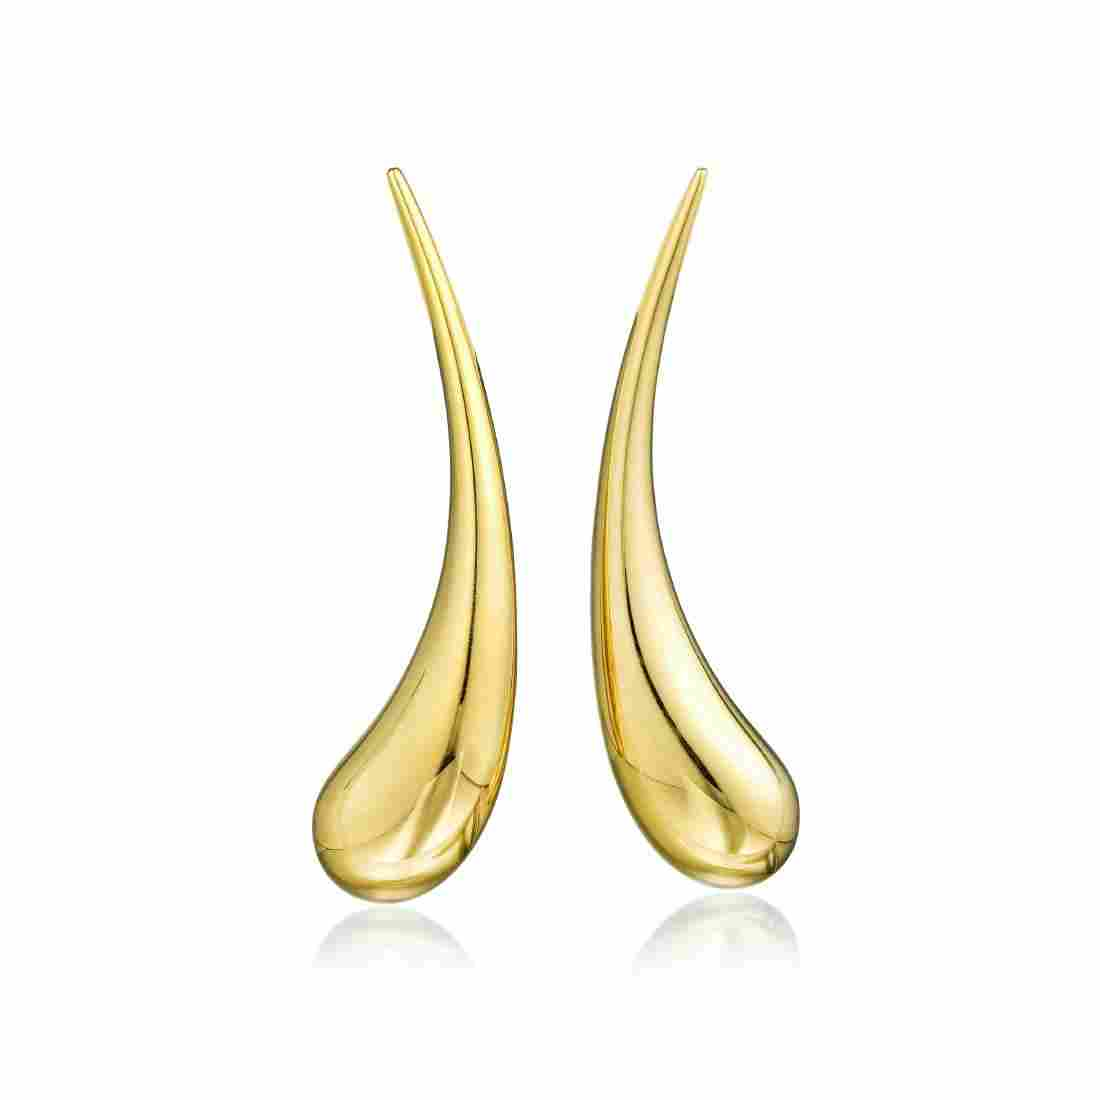 Tiffany & Co. Elsa Peretti 18K Gold Teardrop Earrings